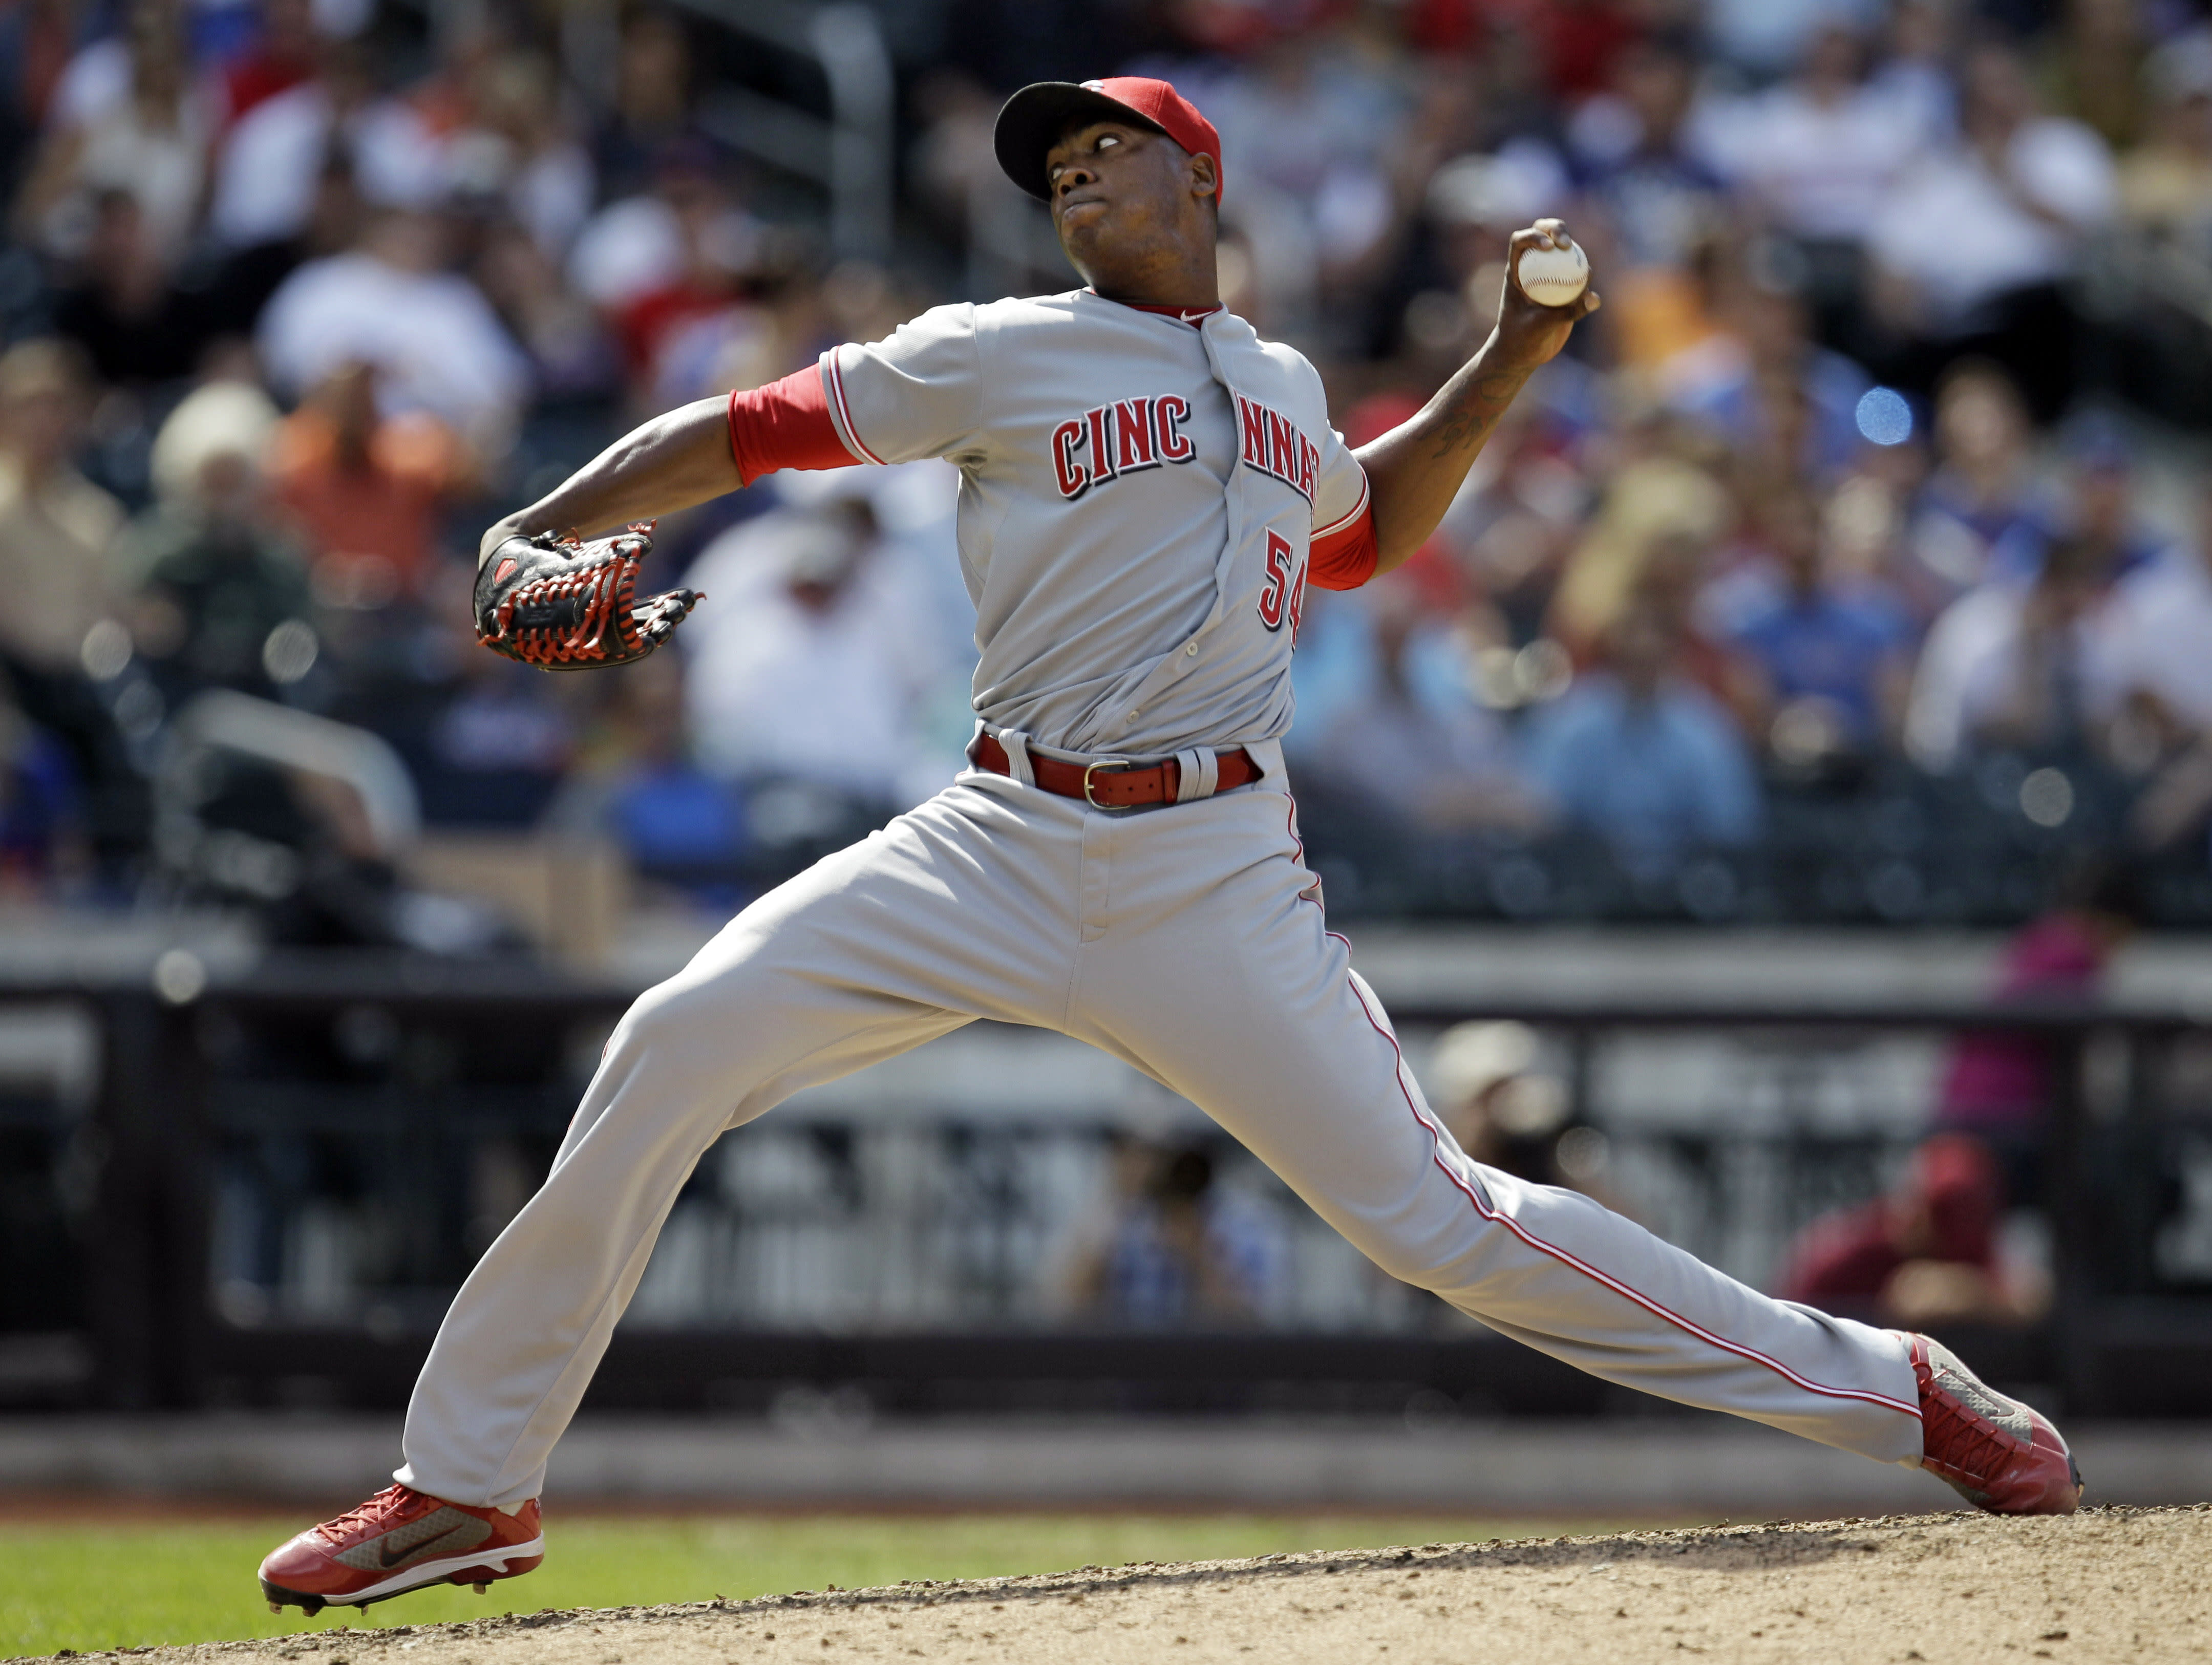 Cincinnati Reds relief pitcher Aroldis Chapman throws in the seventh inning of a baseball game against the New York Mets at Citi Field in New York, Thursday, May 17, 2012. The Mets won 9-4. (AP Photo/Kathy Willens)